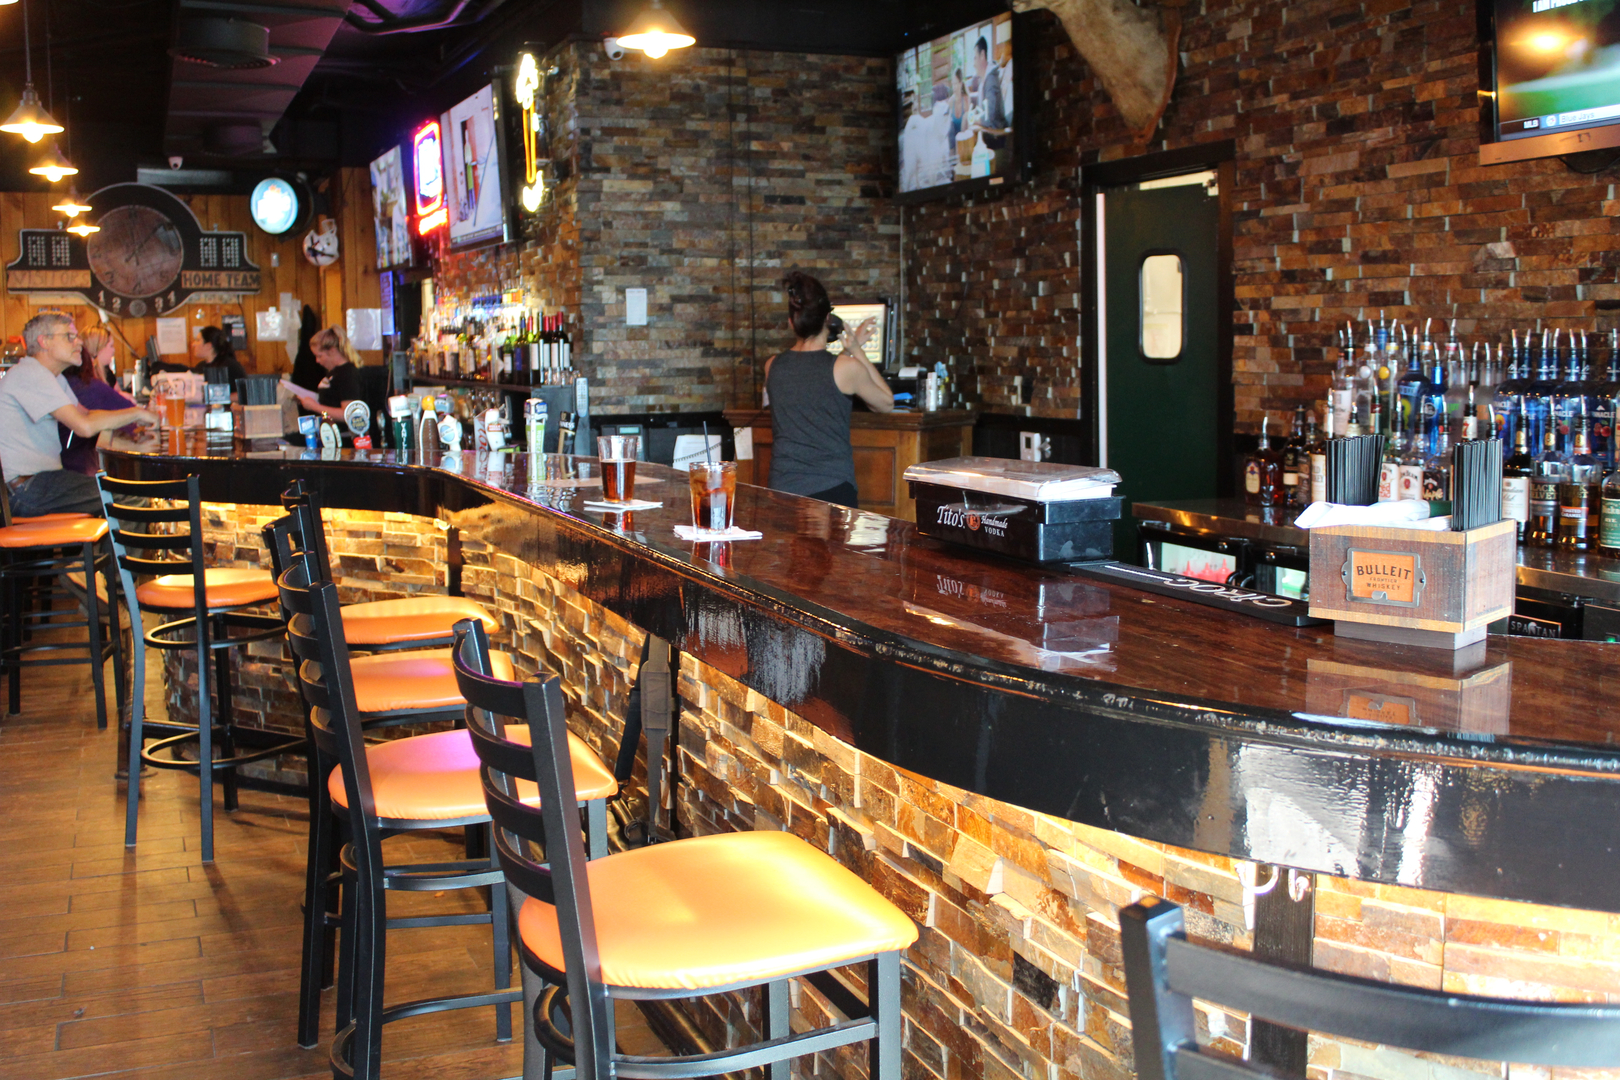 Tonawanda Bar area with stools and bartender